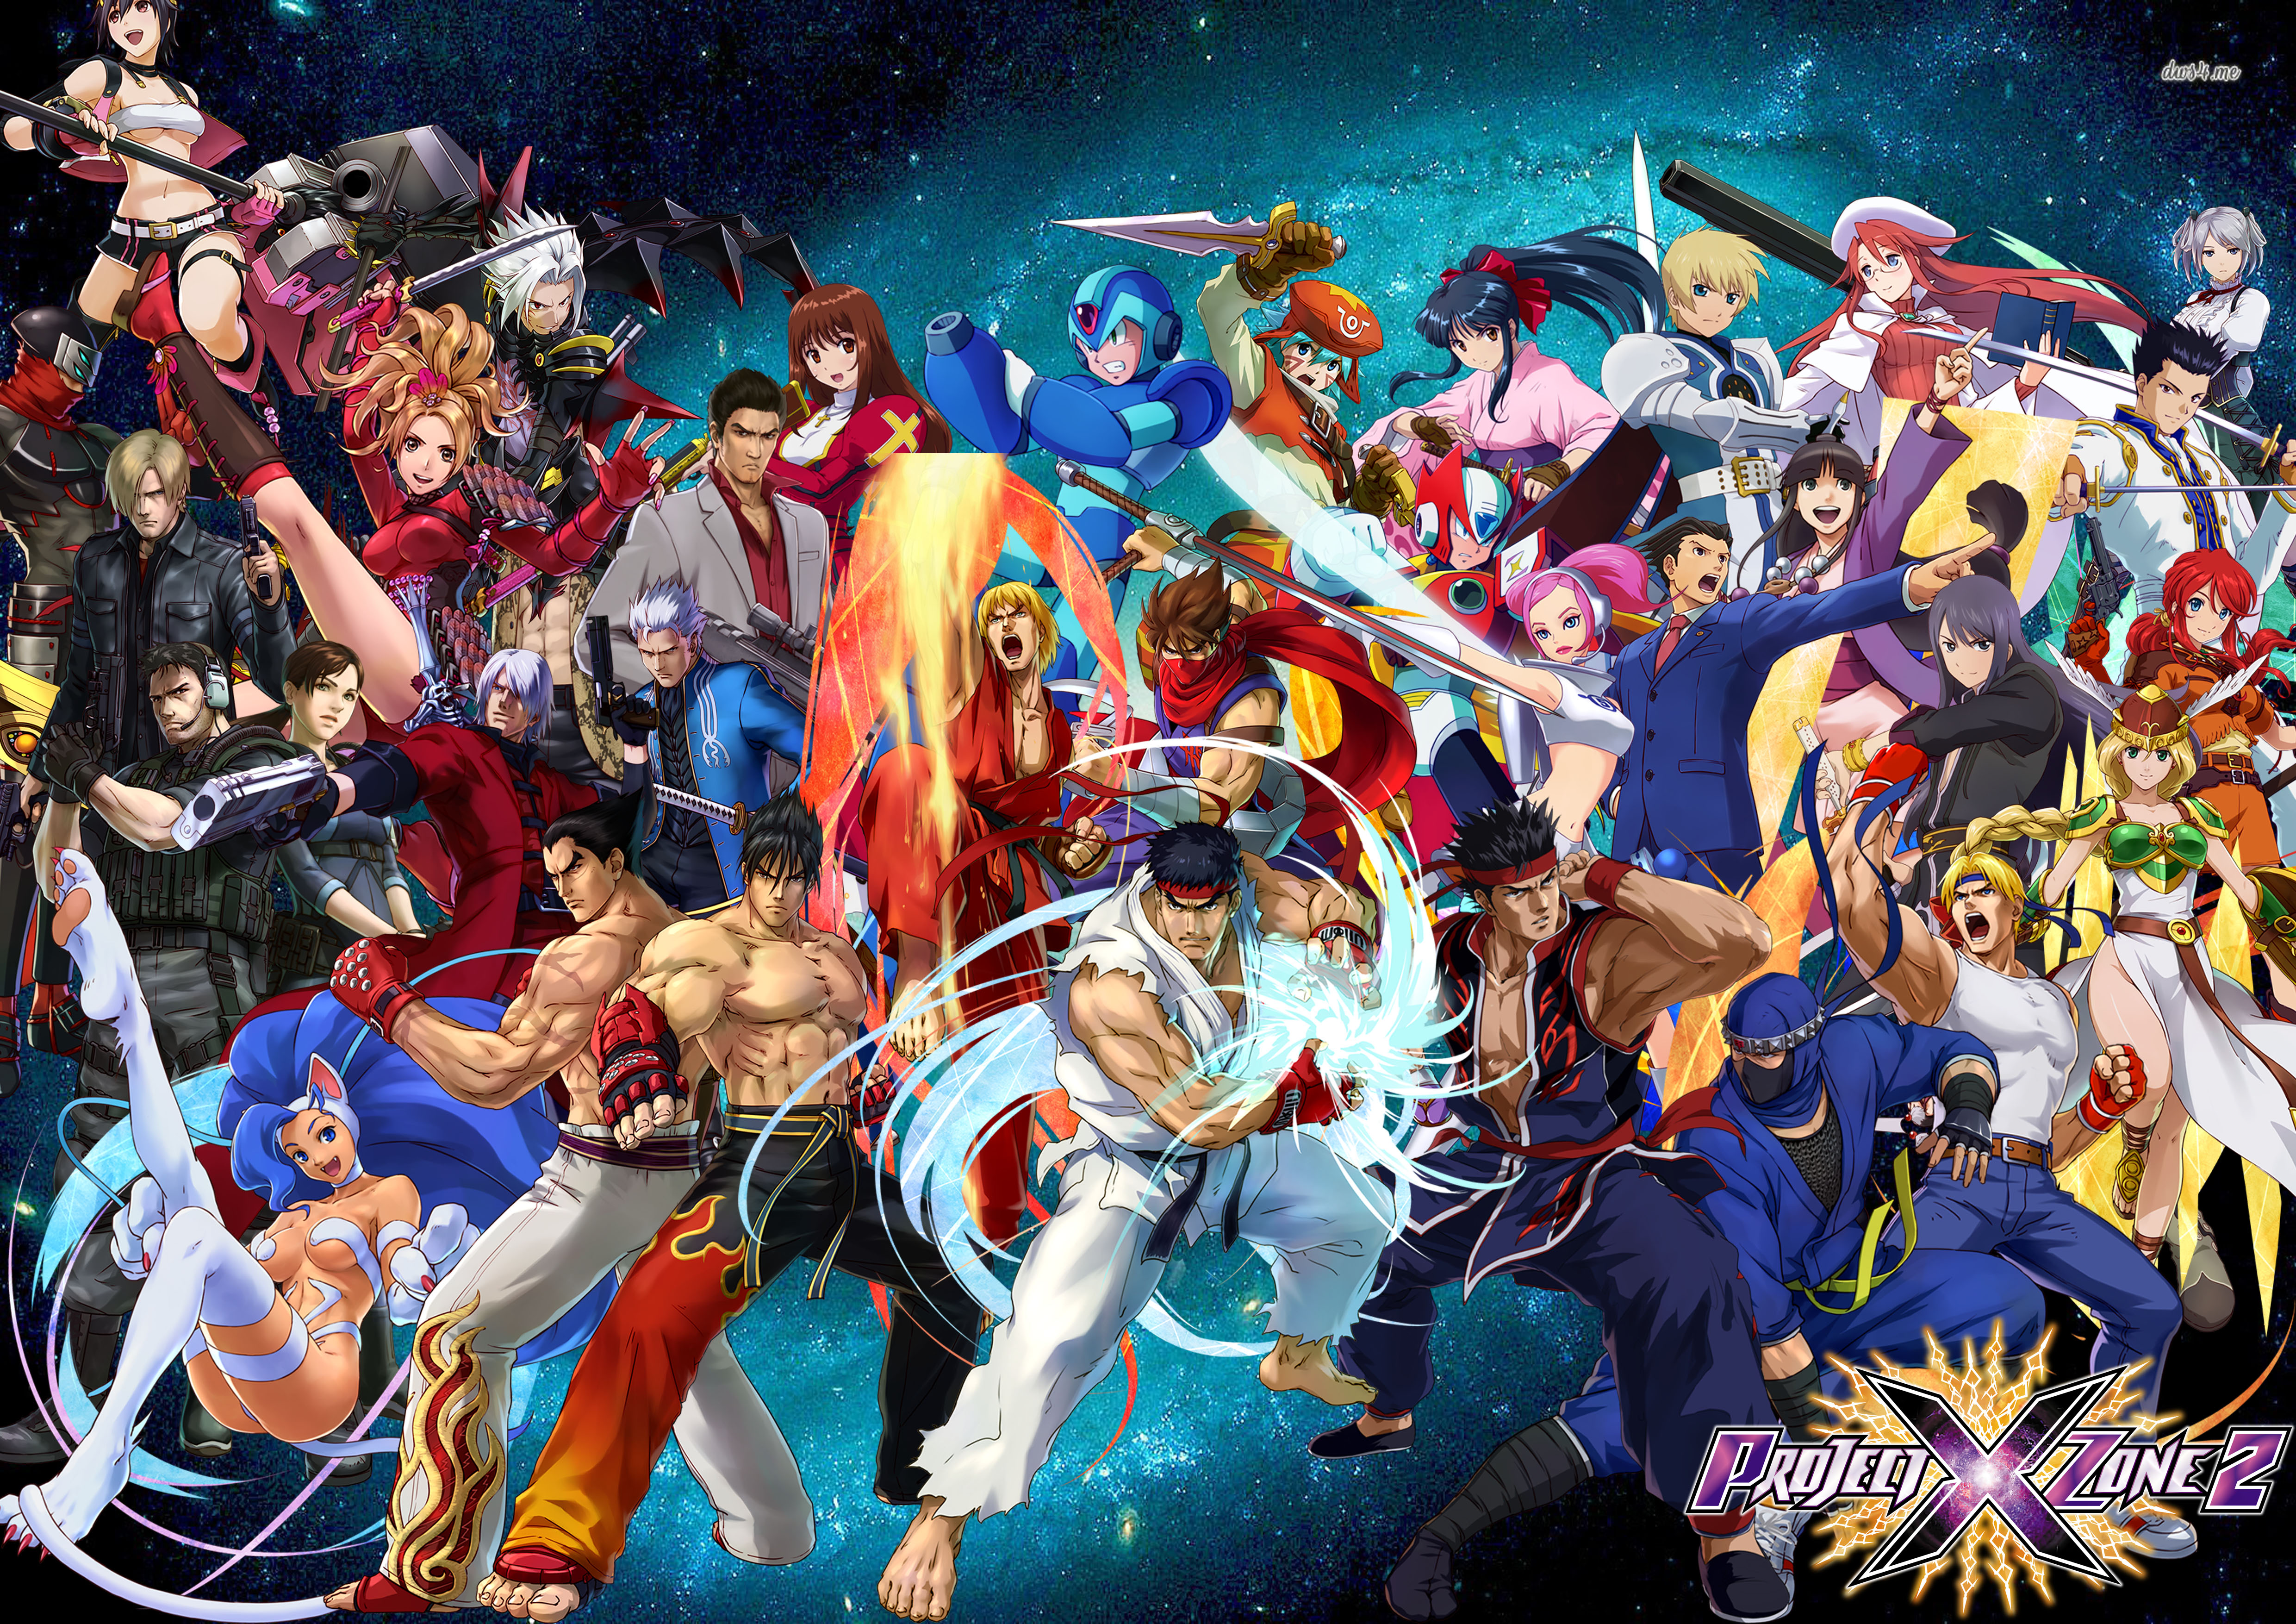 new project x zone 2 trailer released demo coming soon segabits 1 source for sega news. Black Bedroom Furniture Sets. Home Design Ideas